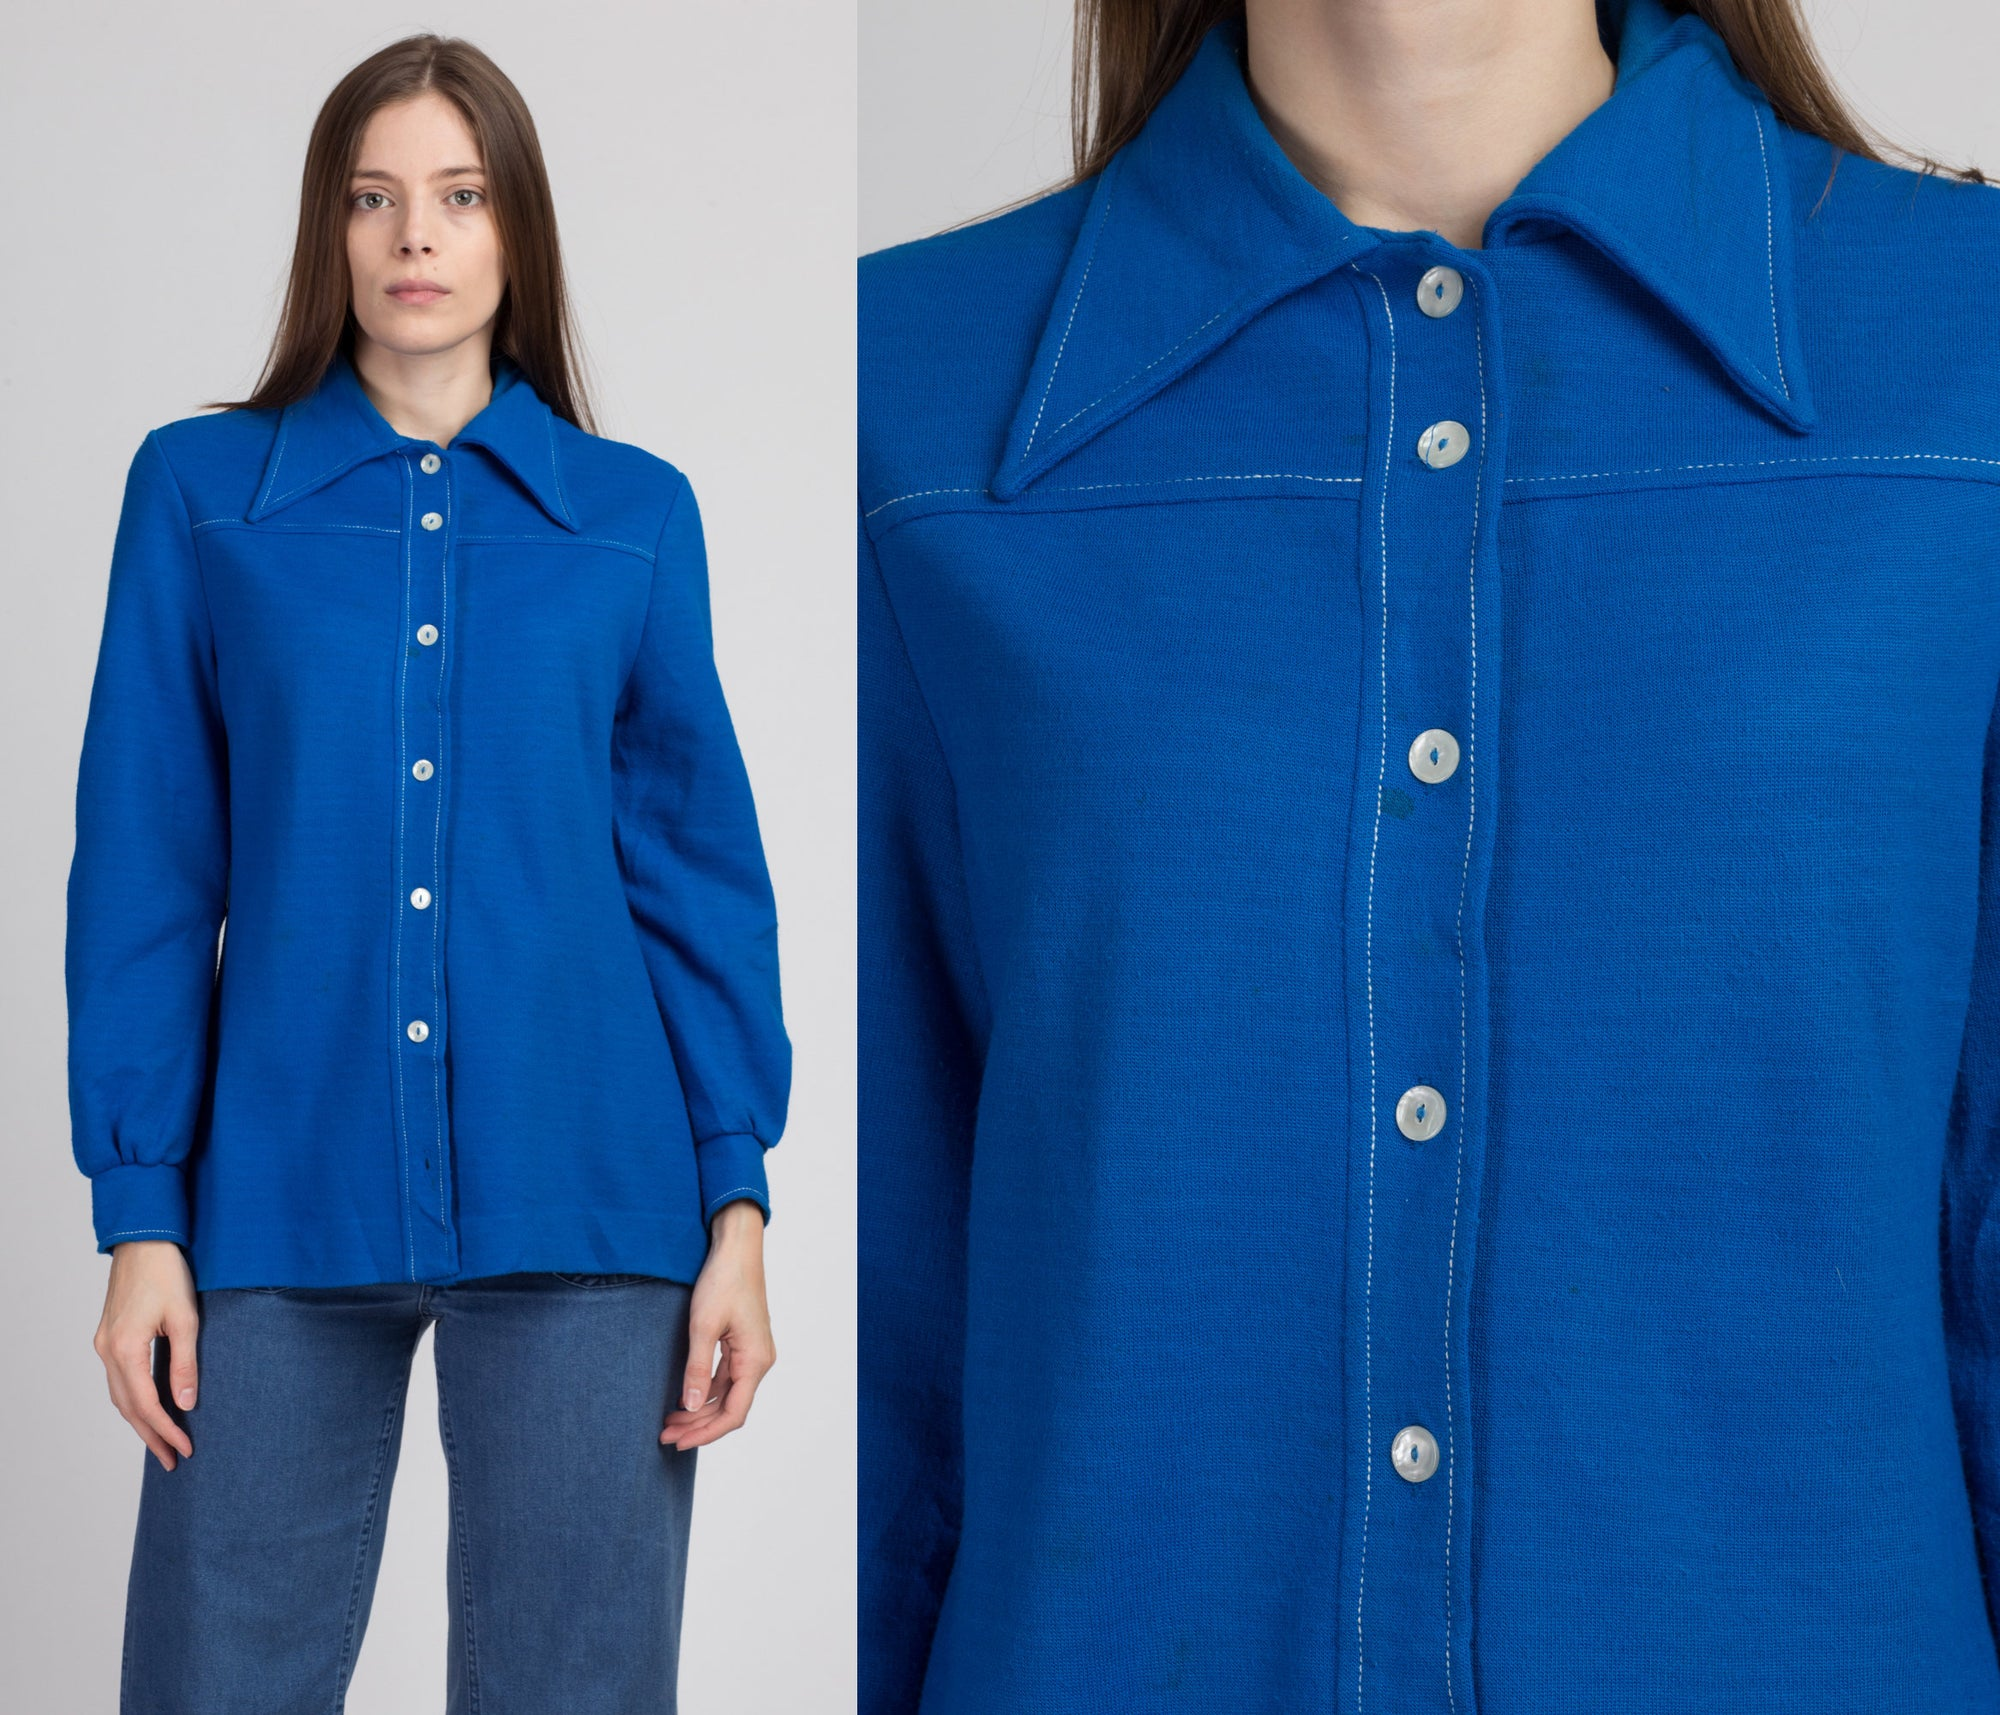 60s Catalina Sportswear Blue Button Up Top - Medium